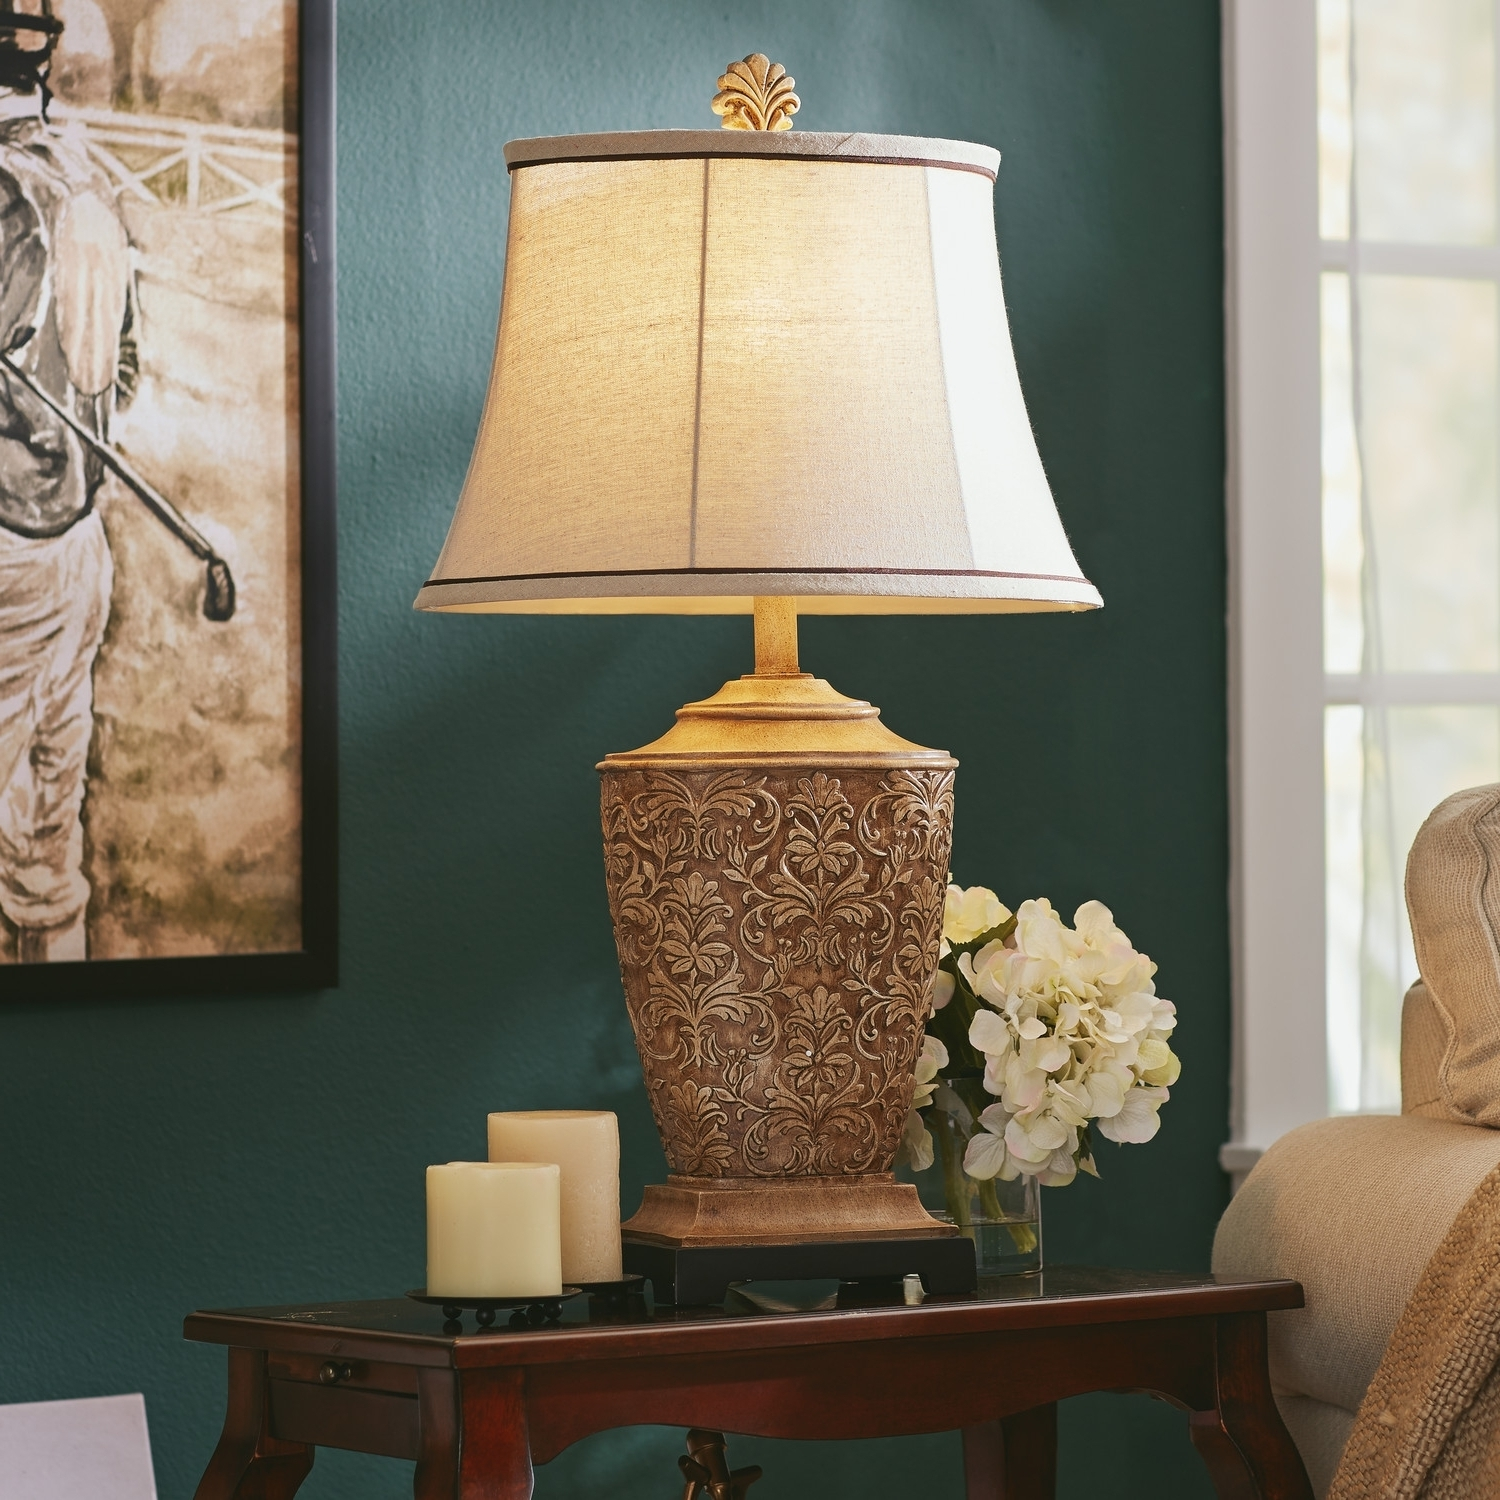 Living Room Table Reading Lamps Within Best And Newest Side Table Lamps For Living Room – Living Room Decorating Design (View 4 of 20)